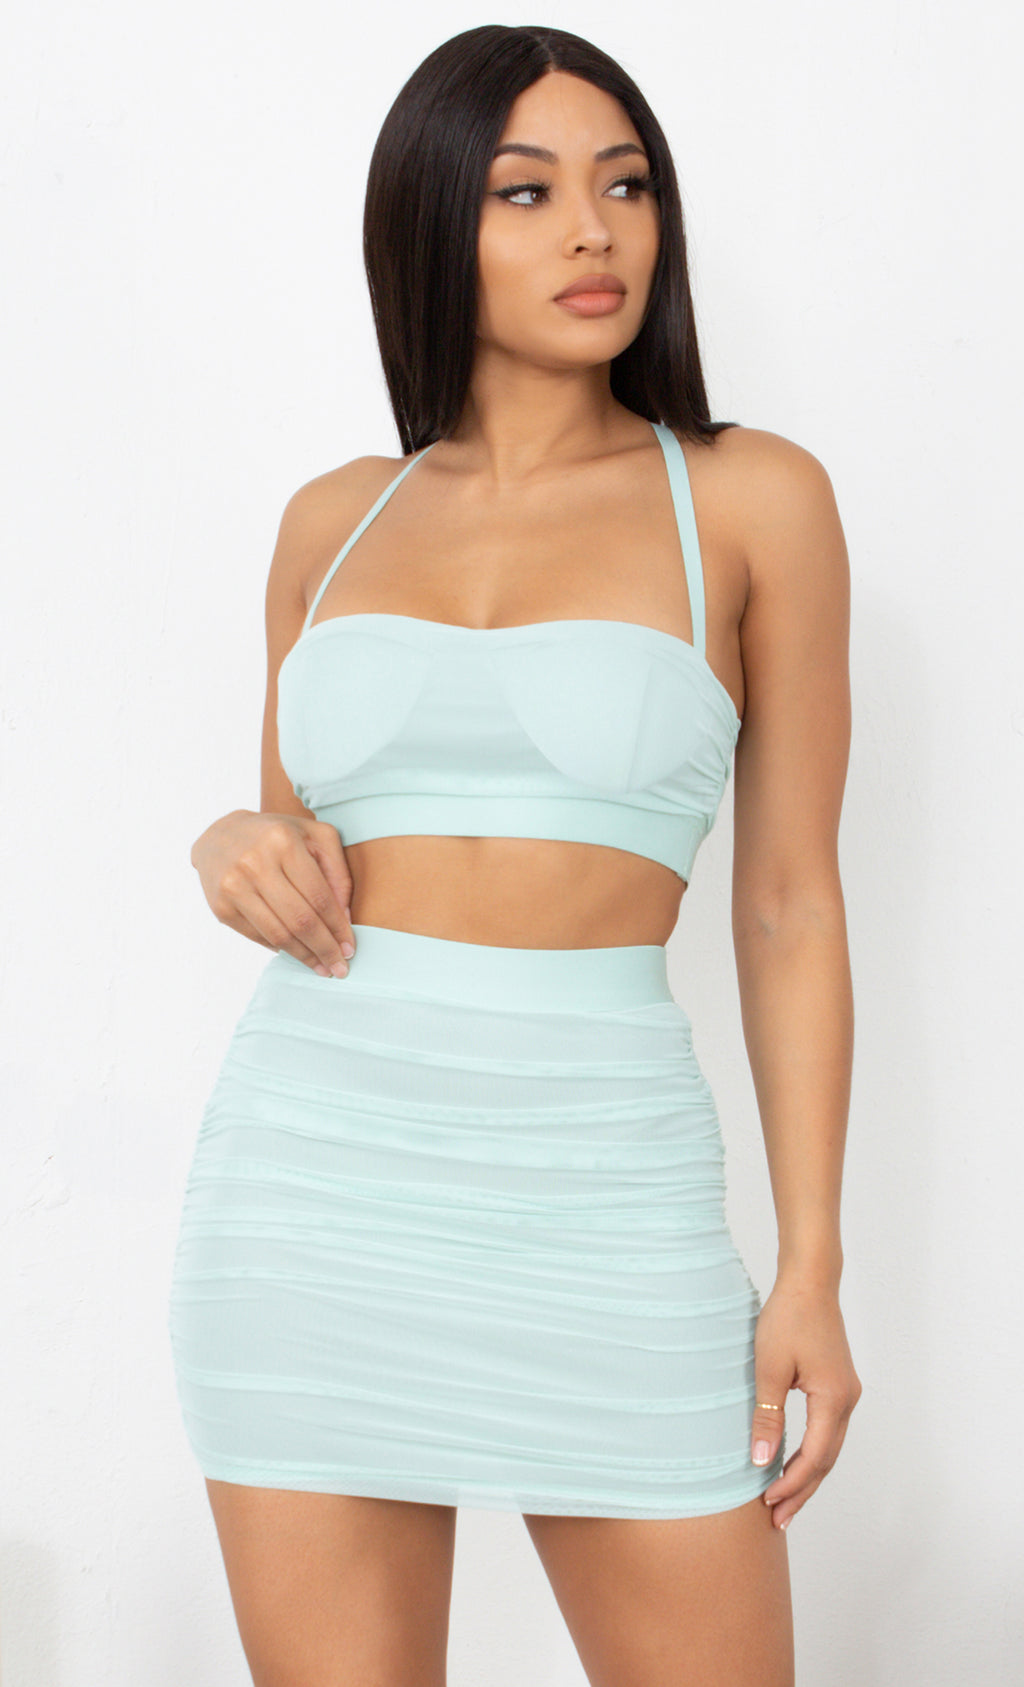 Barely There Light Green Sleeveless Spaghetti Strap Crop Top Ruched Bodycon Mini Skirt Two Piece Dress